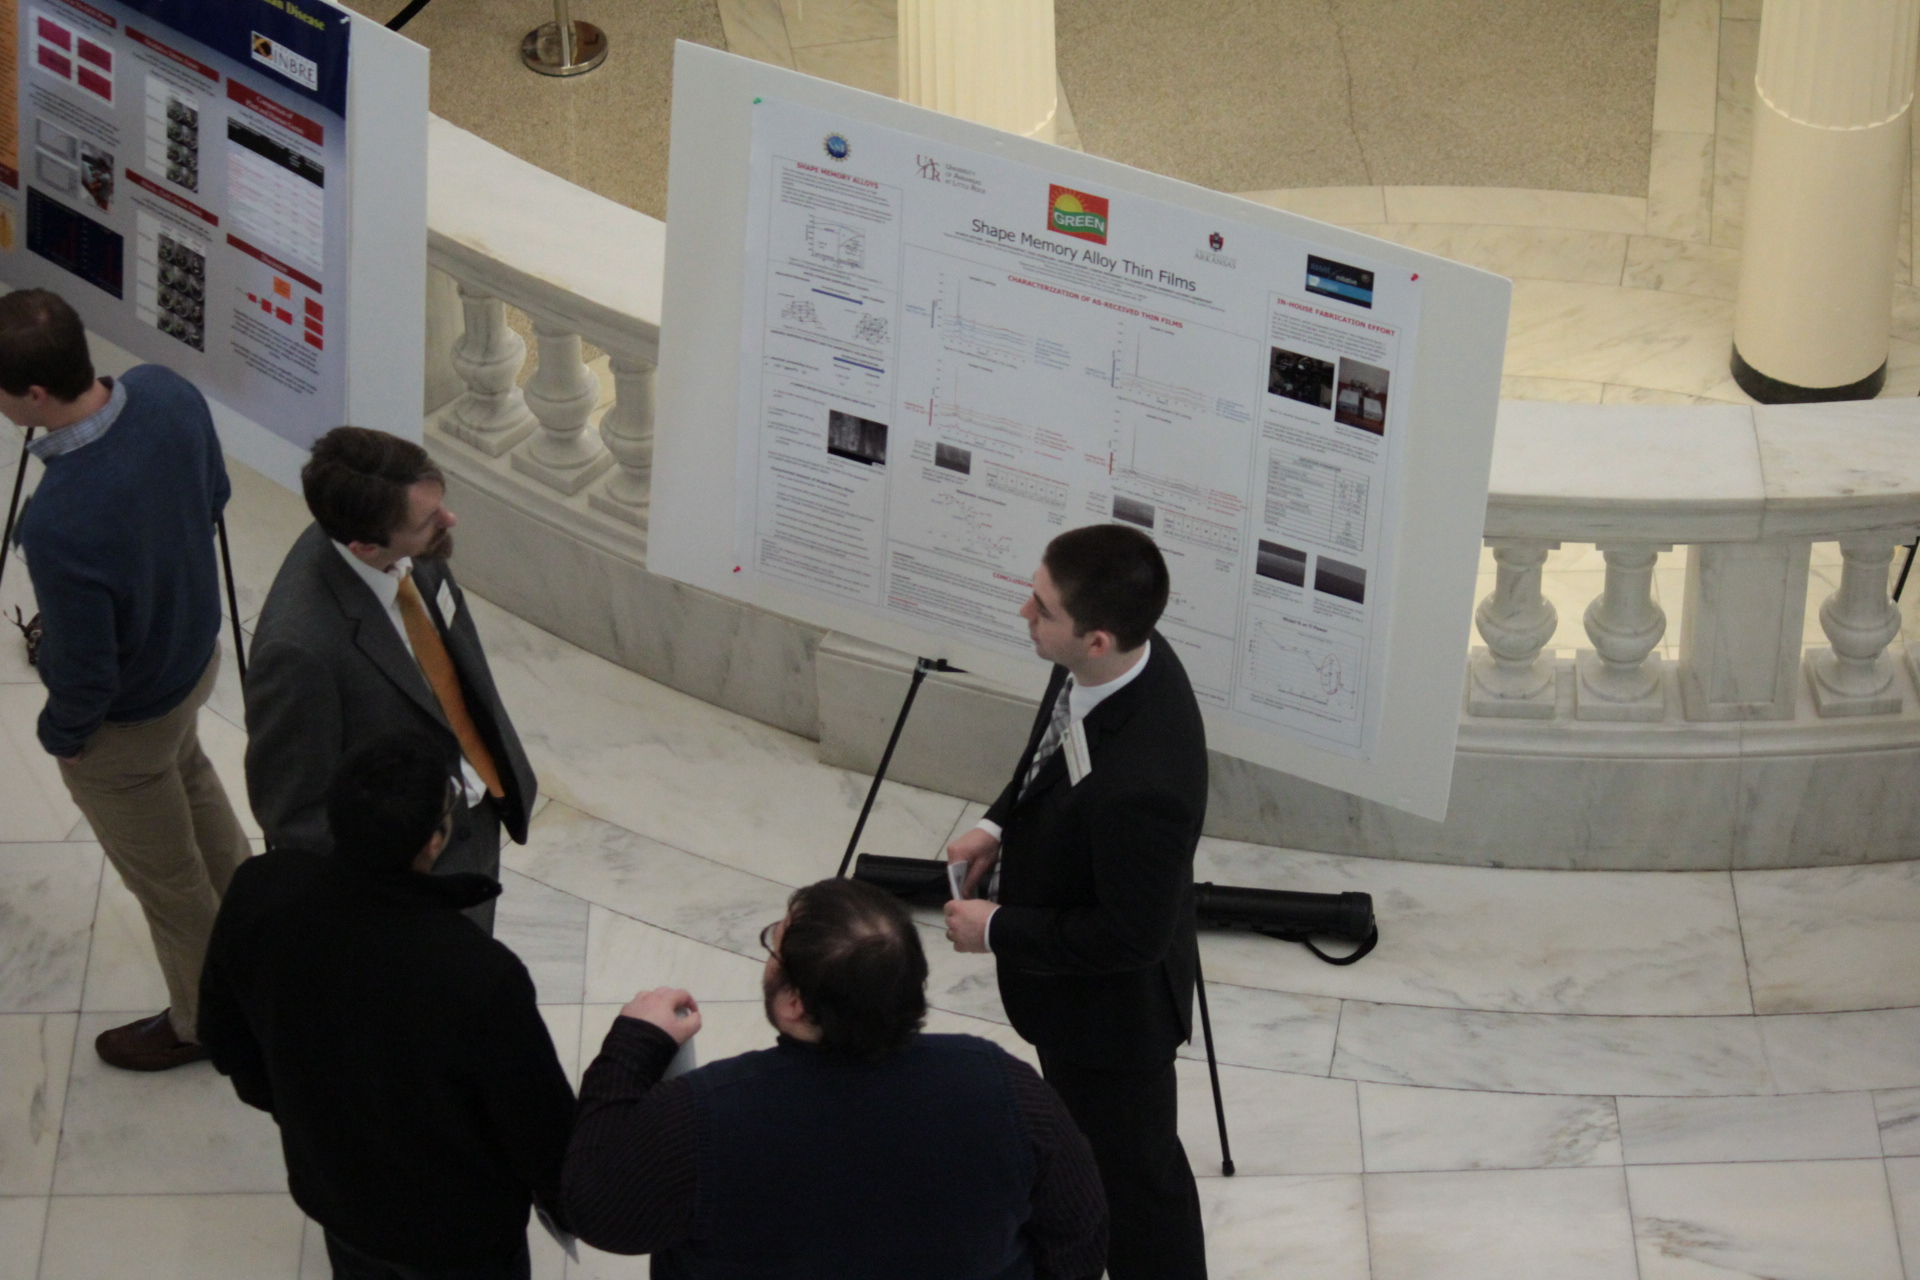 Anthony Keener presents his research at the STEM Posters at the Arkansas State Capitol 2013